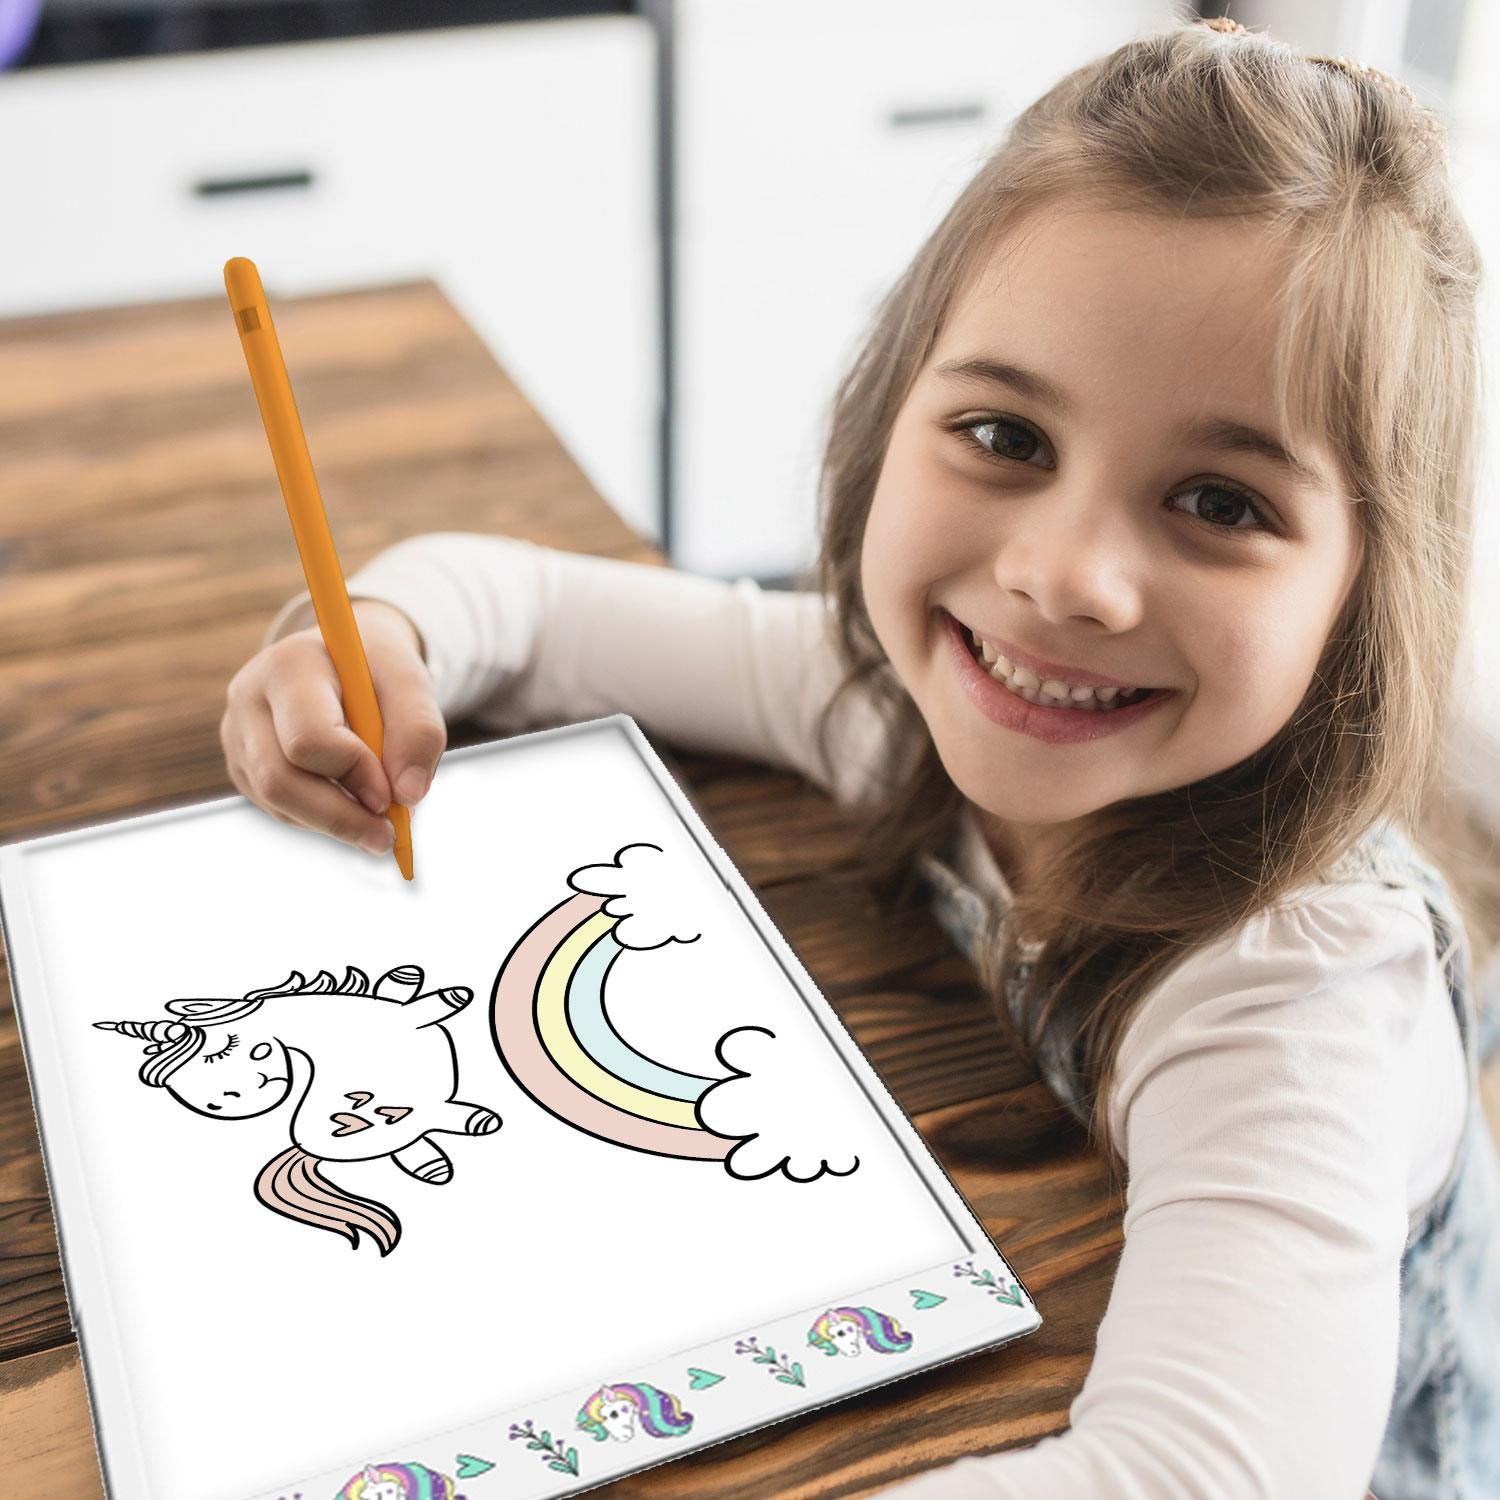 Doodle A4 Ultra-Thin Portable LED Tracing Pad with USB Cable Unicorn